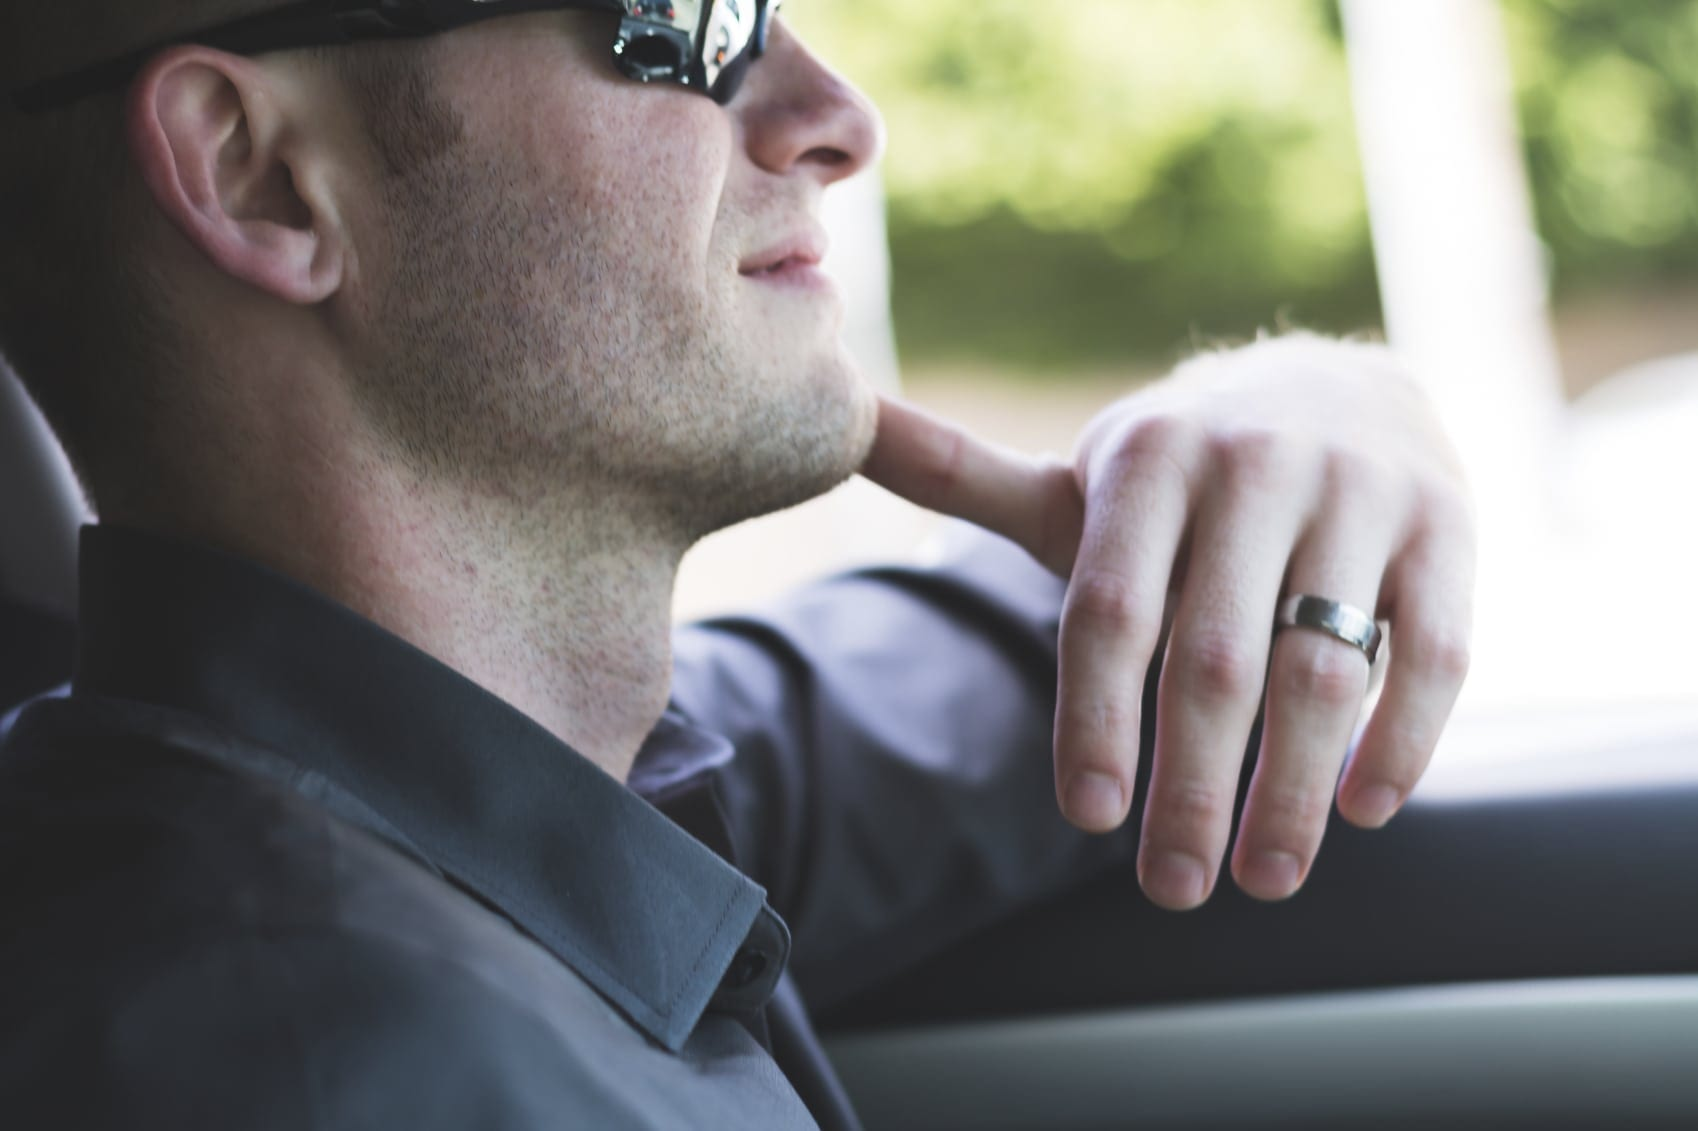 Young Man Driving His Vehicle Stock Photo